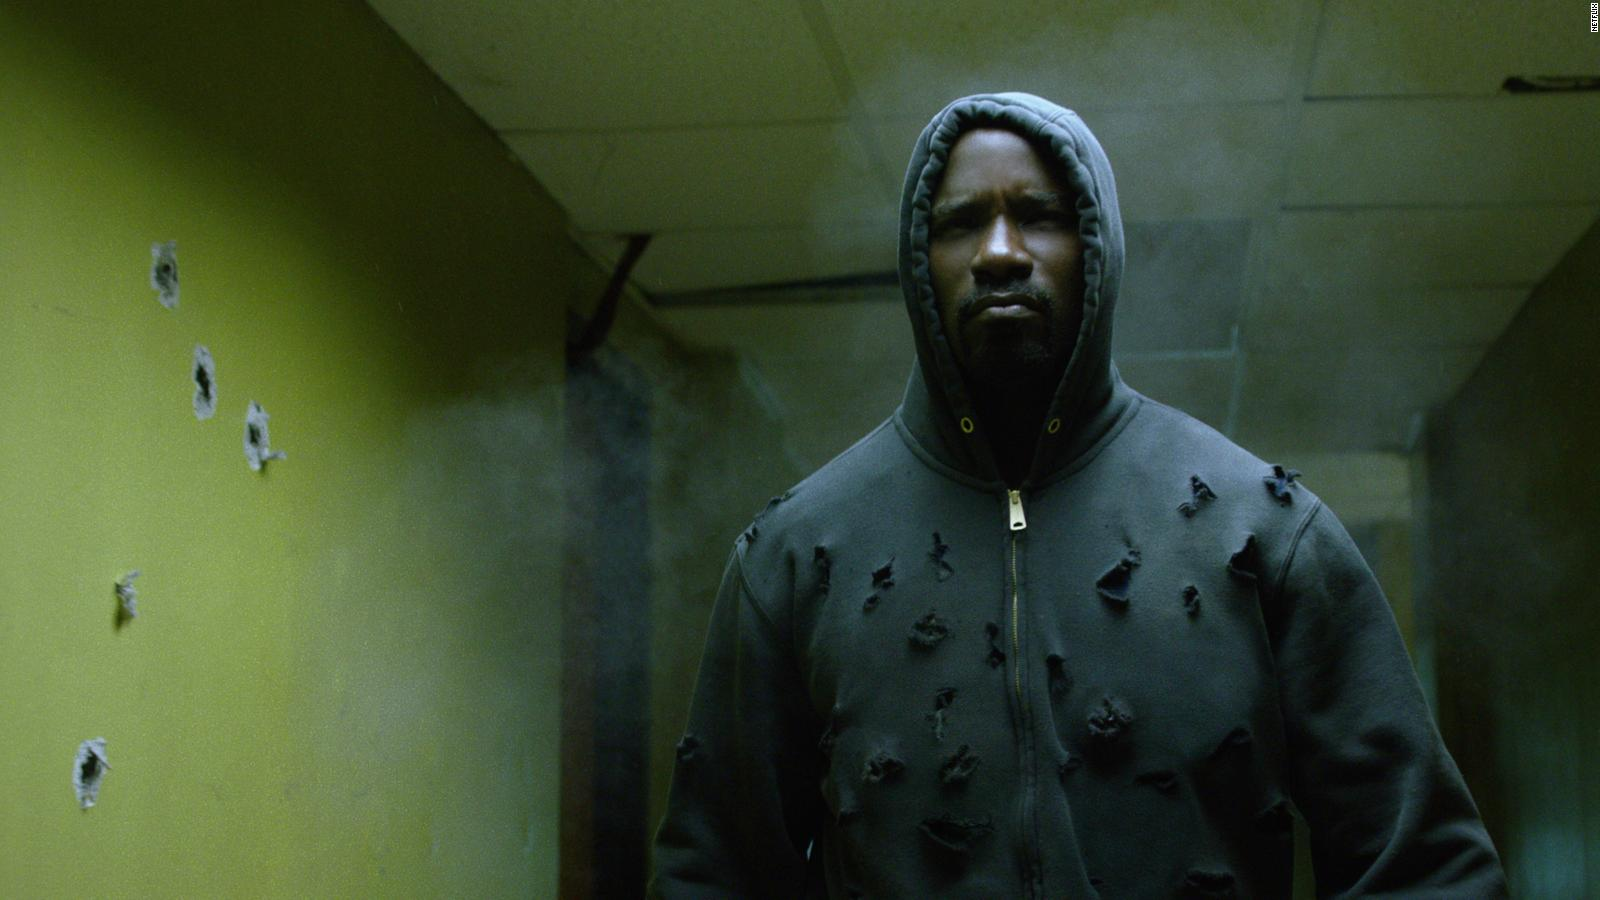 Luke Cage Will Not Return To Netflix For A Third Season